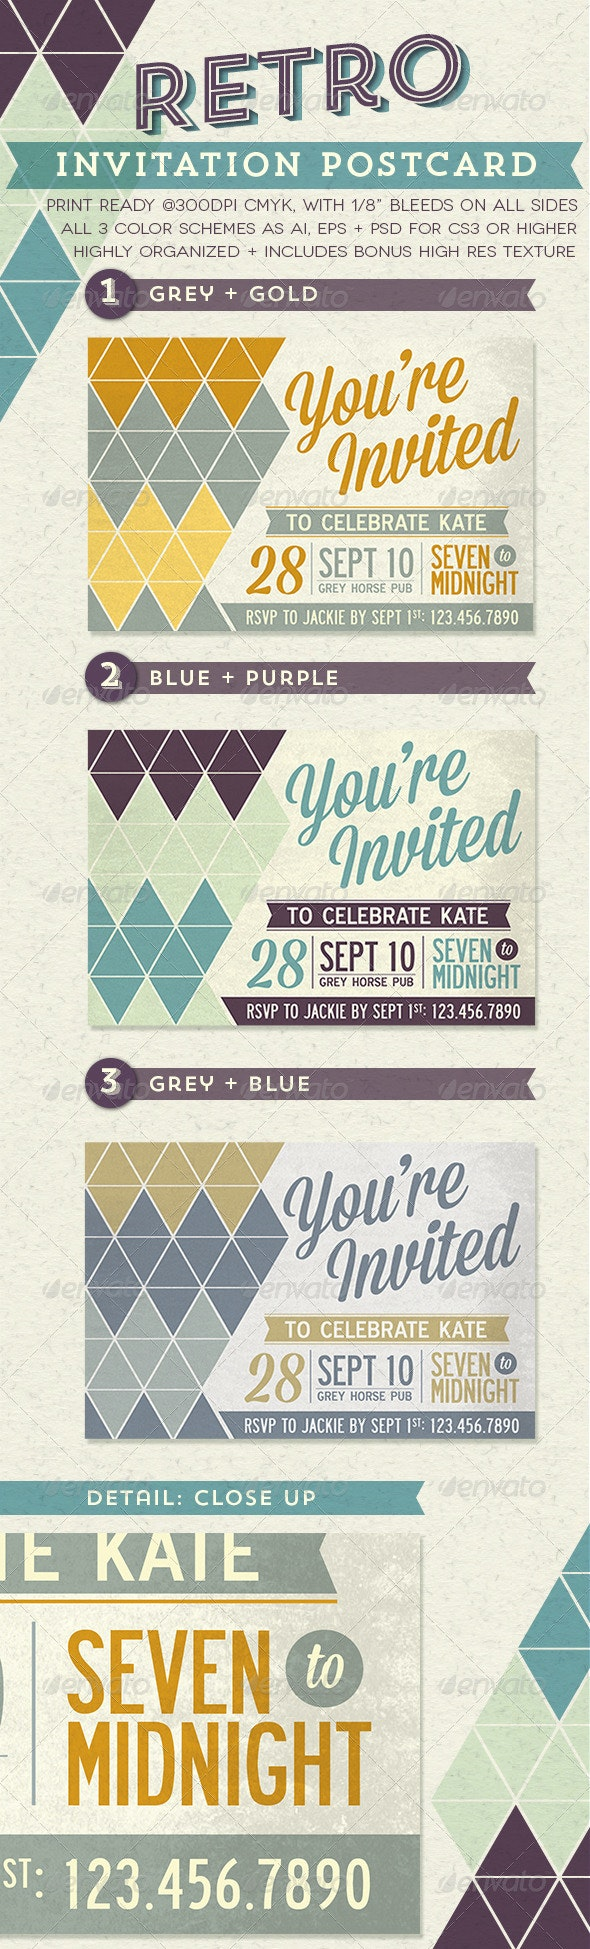 Retro Invitation Postcard - Invitations Cards & Invites